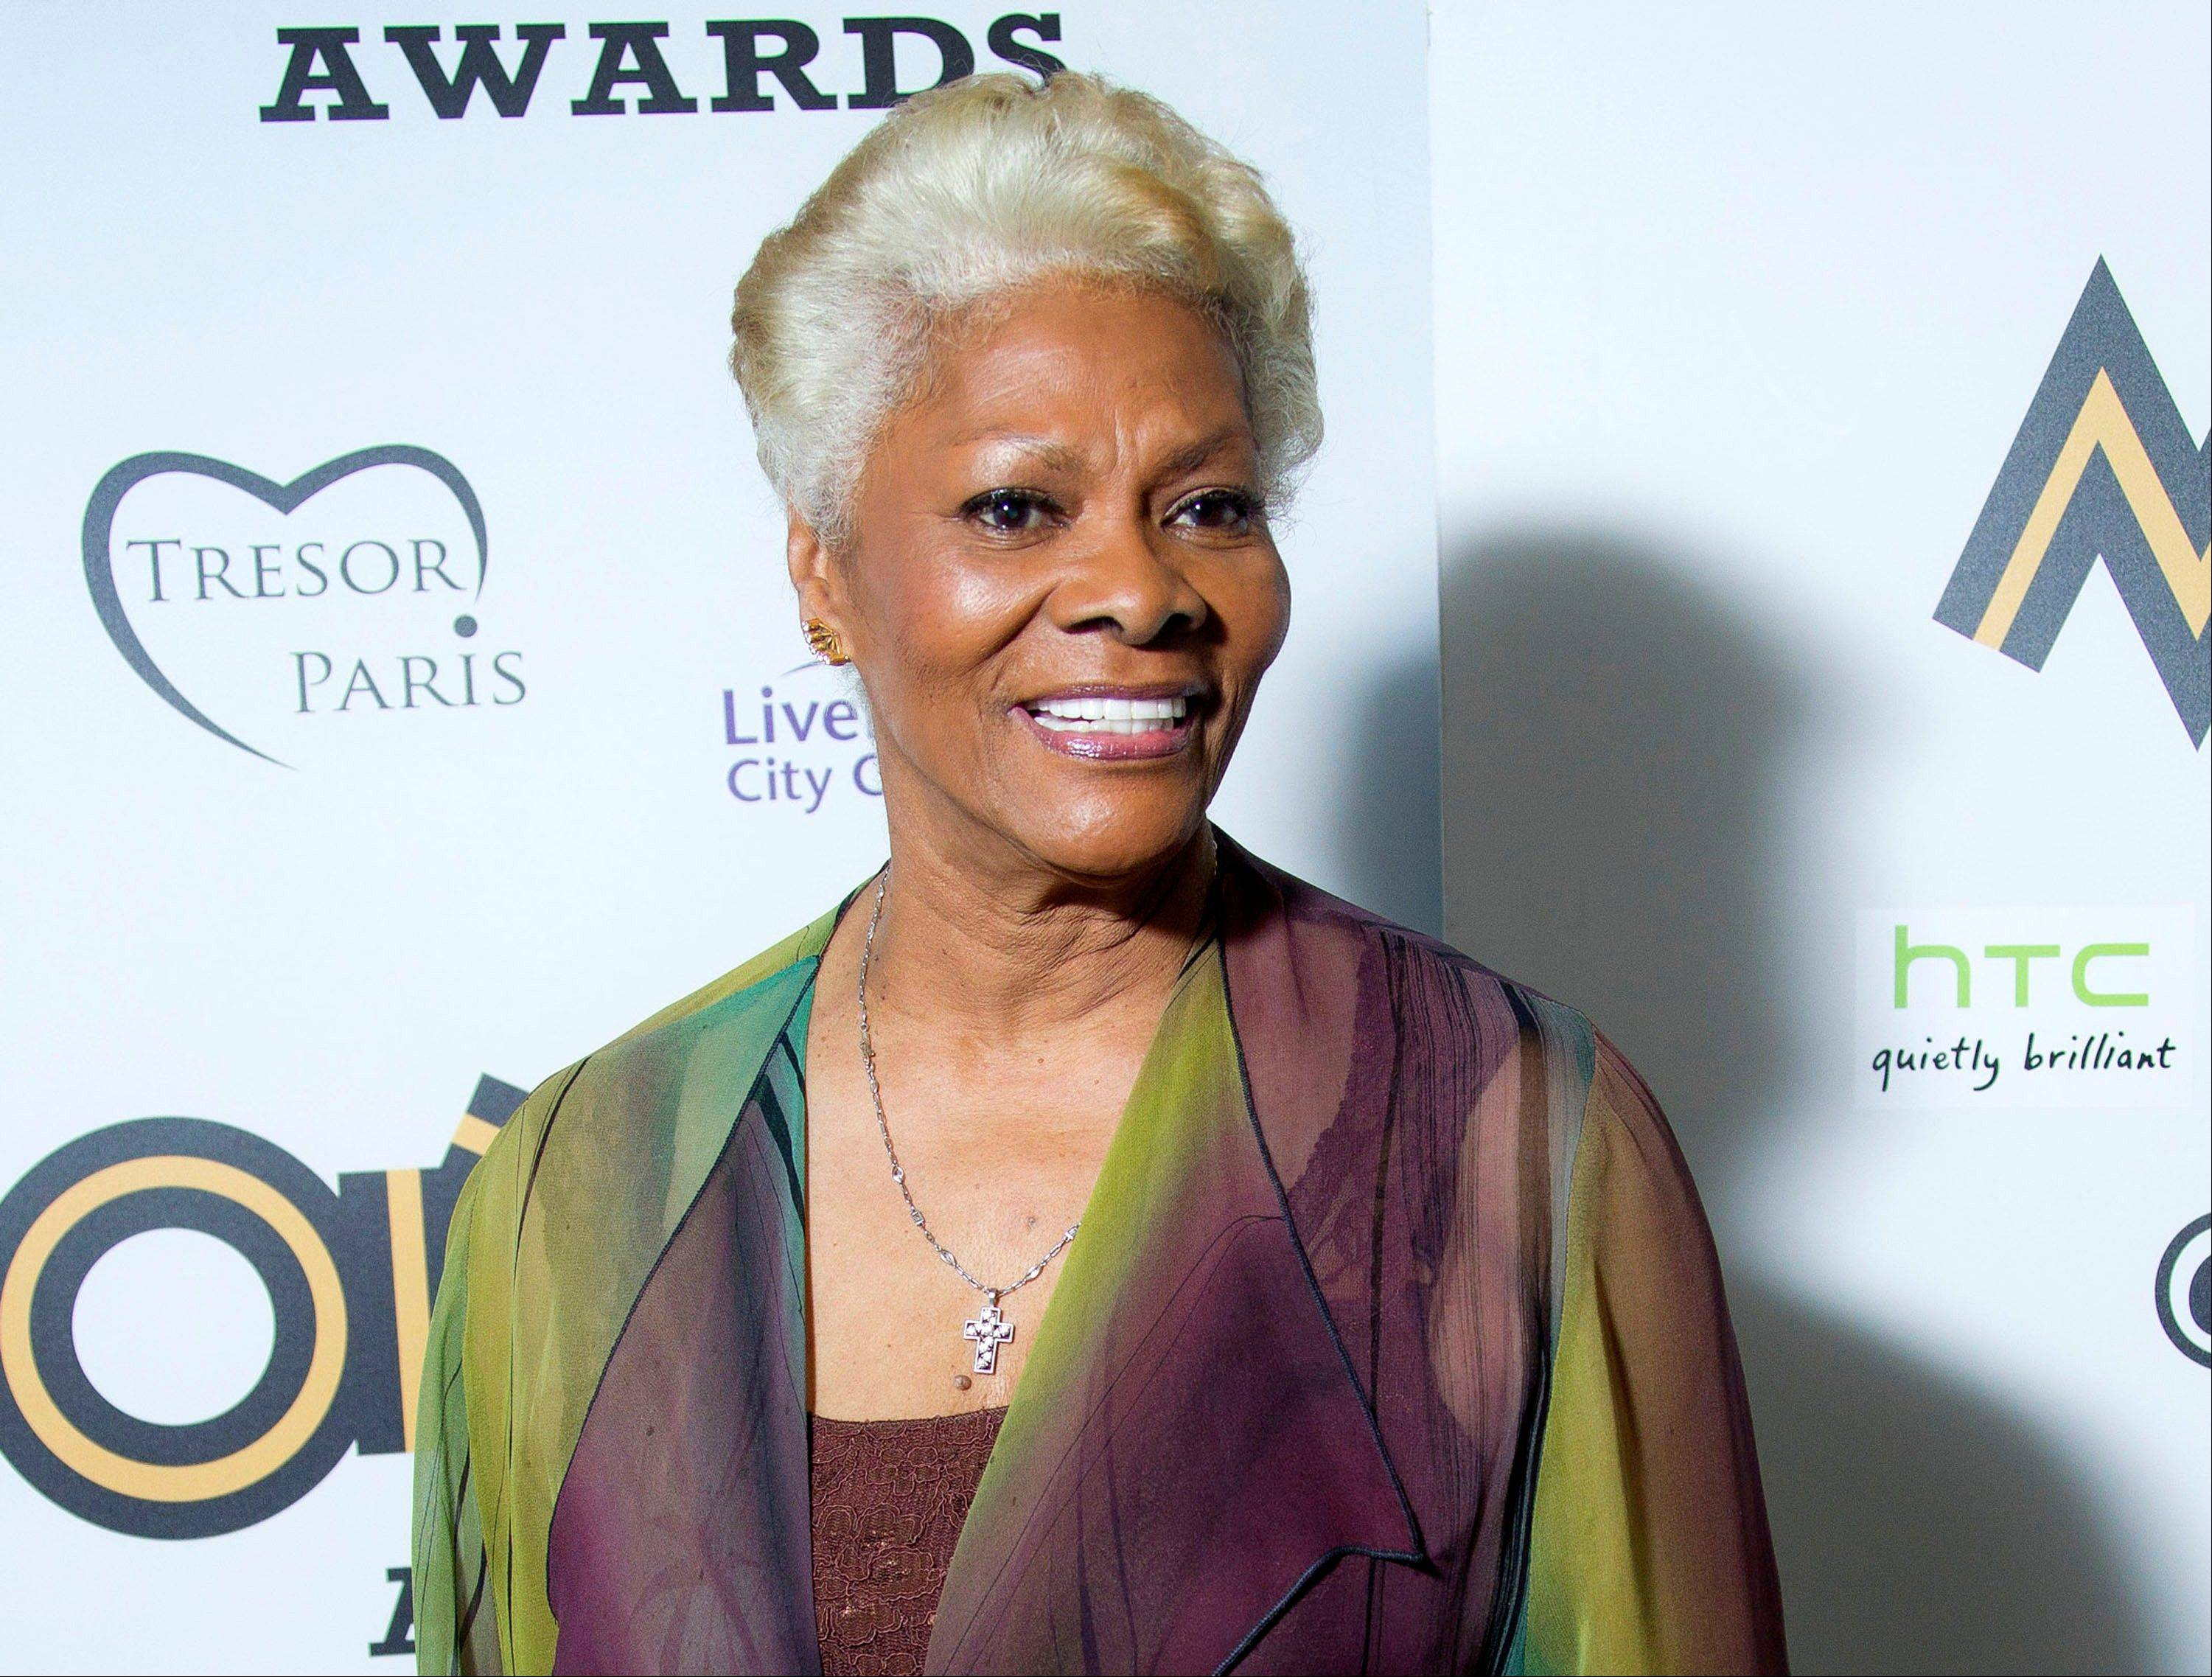 Singer Dionne Warwick claims in a recent bankruptcy filing that she owes nearly $10 million in back taxes.